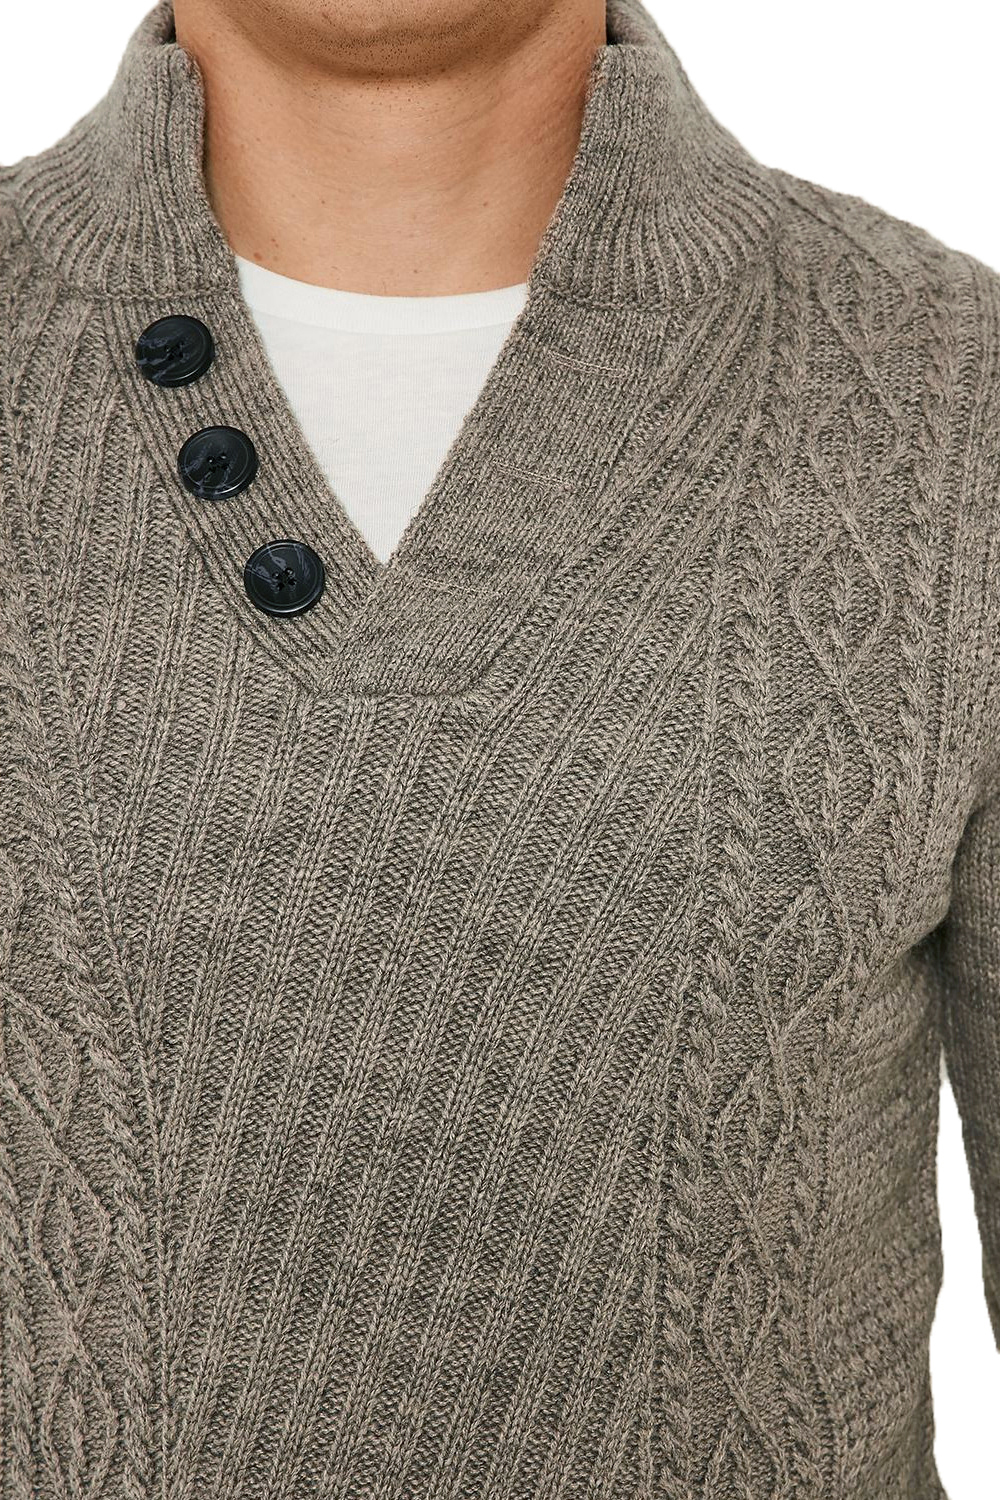 Threadbare-Wray-Mens-Top-Cable-Knited-Designer-Luxurious-Wool-Mix-Raglan-Jumpers thumbnail 21